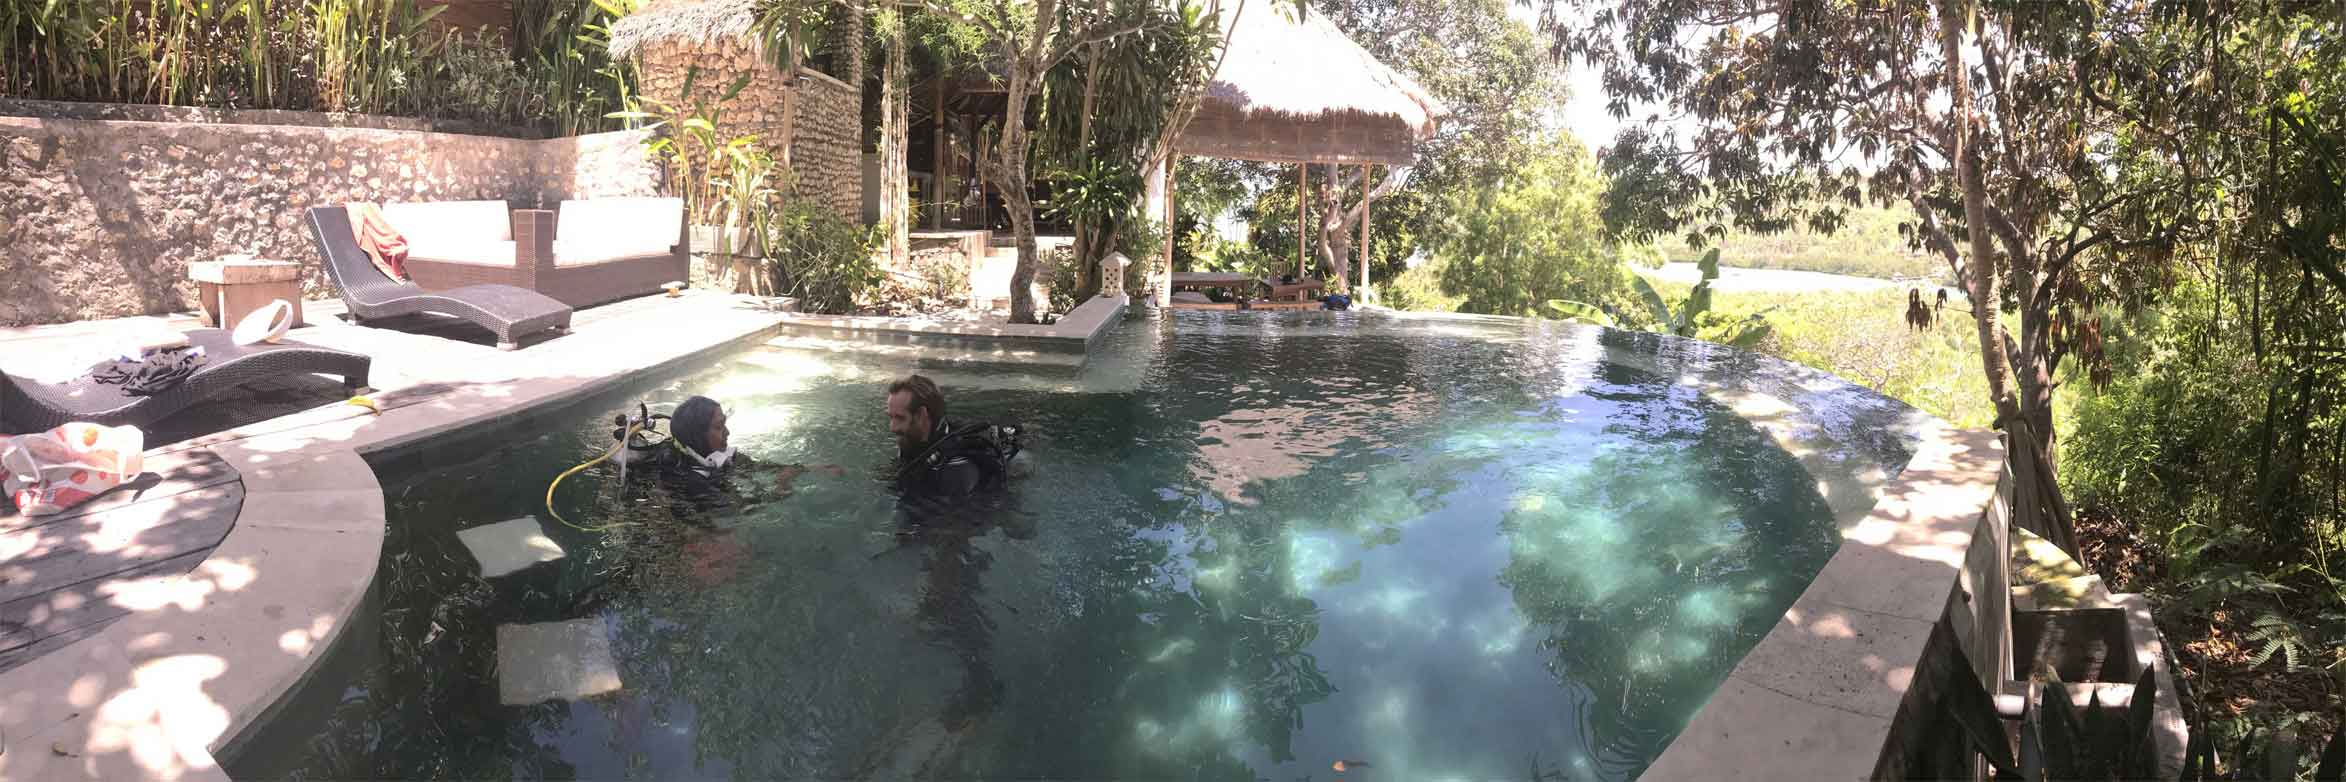 PADI Divemaster Internship in Lembongan - Amanda in the pool with Kipp